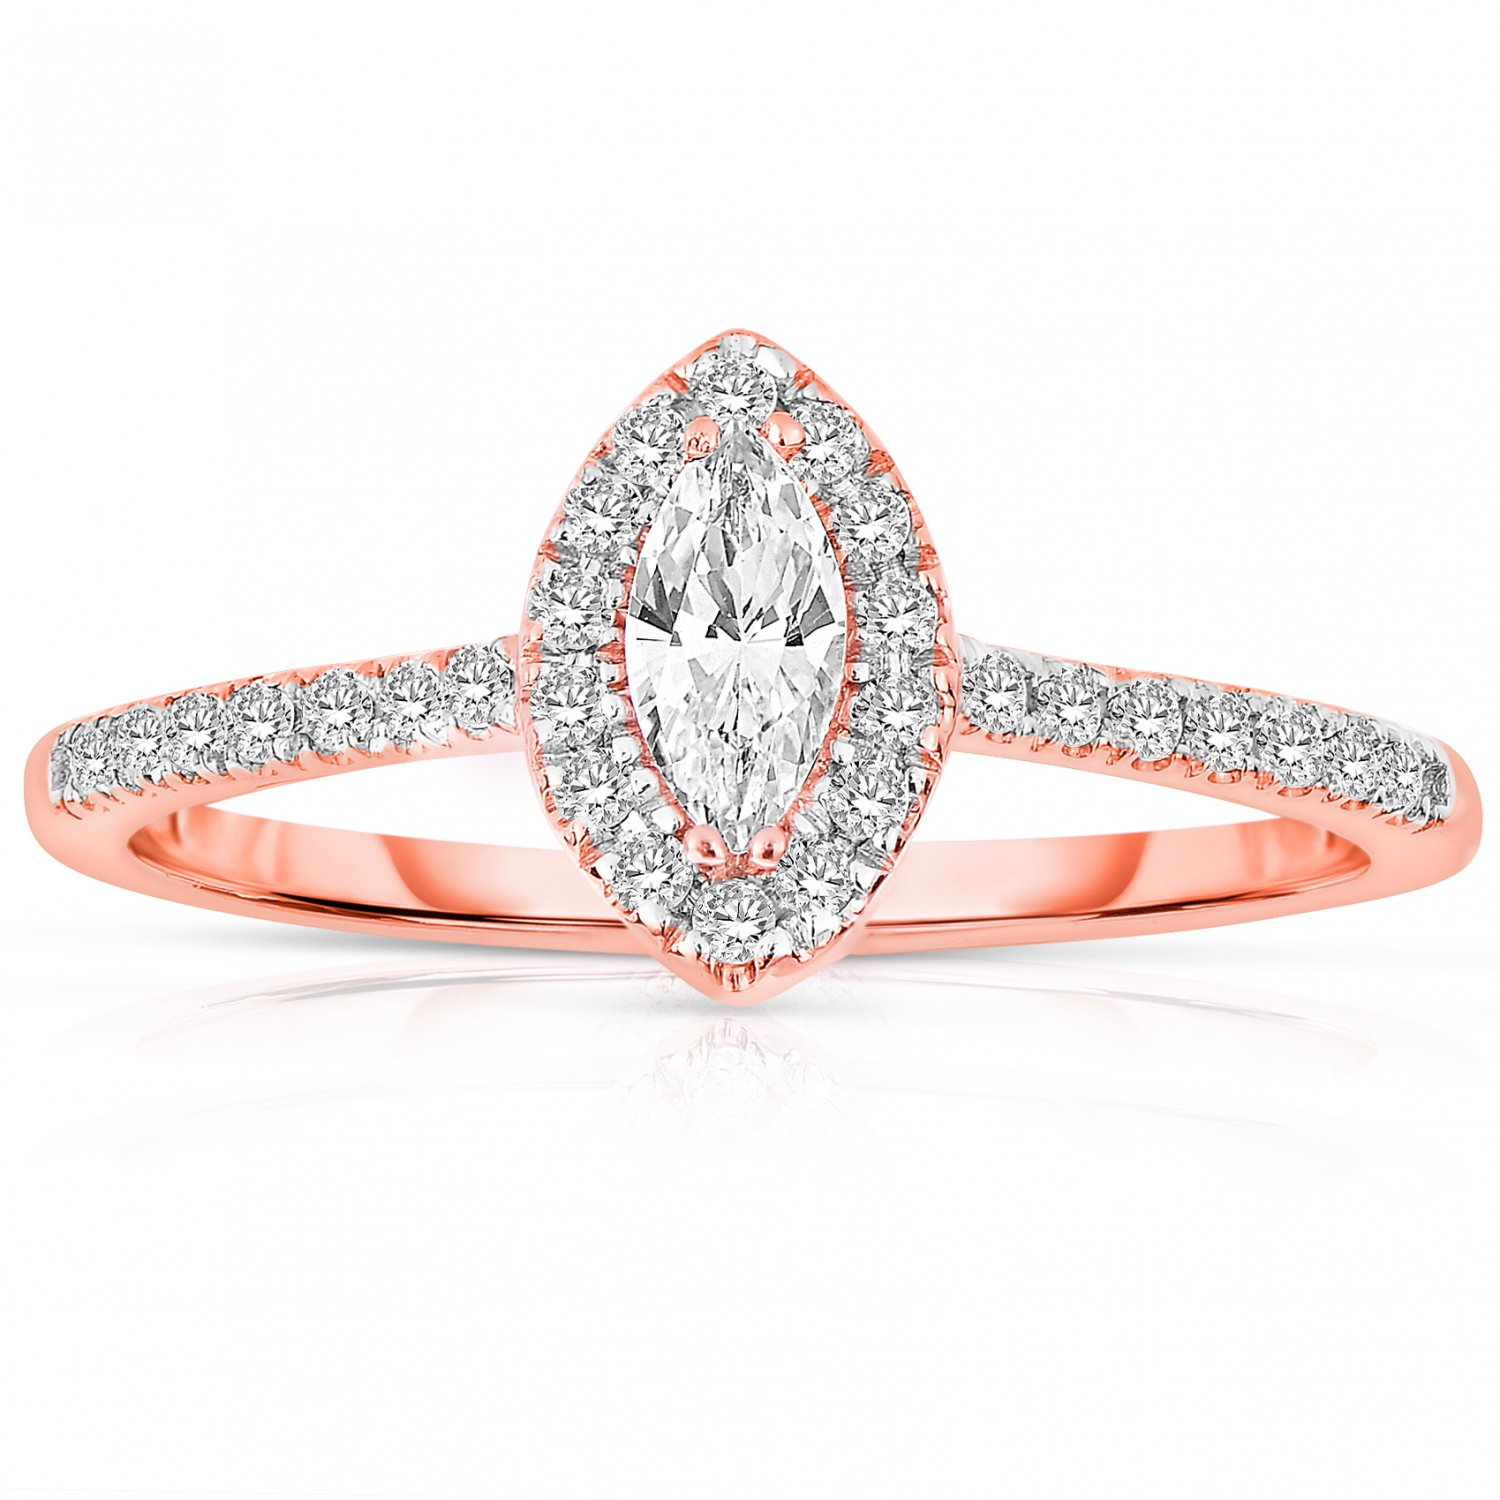 0.50 ct Marquise Diamond Halo Bridal Engagement Ring 14k Rose Gold SALE (ER1375-MQ-050RG-PROMO)